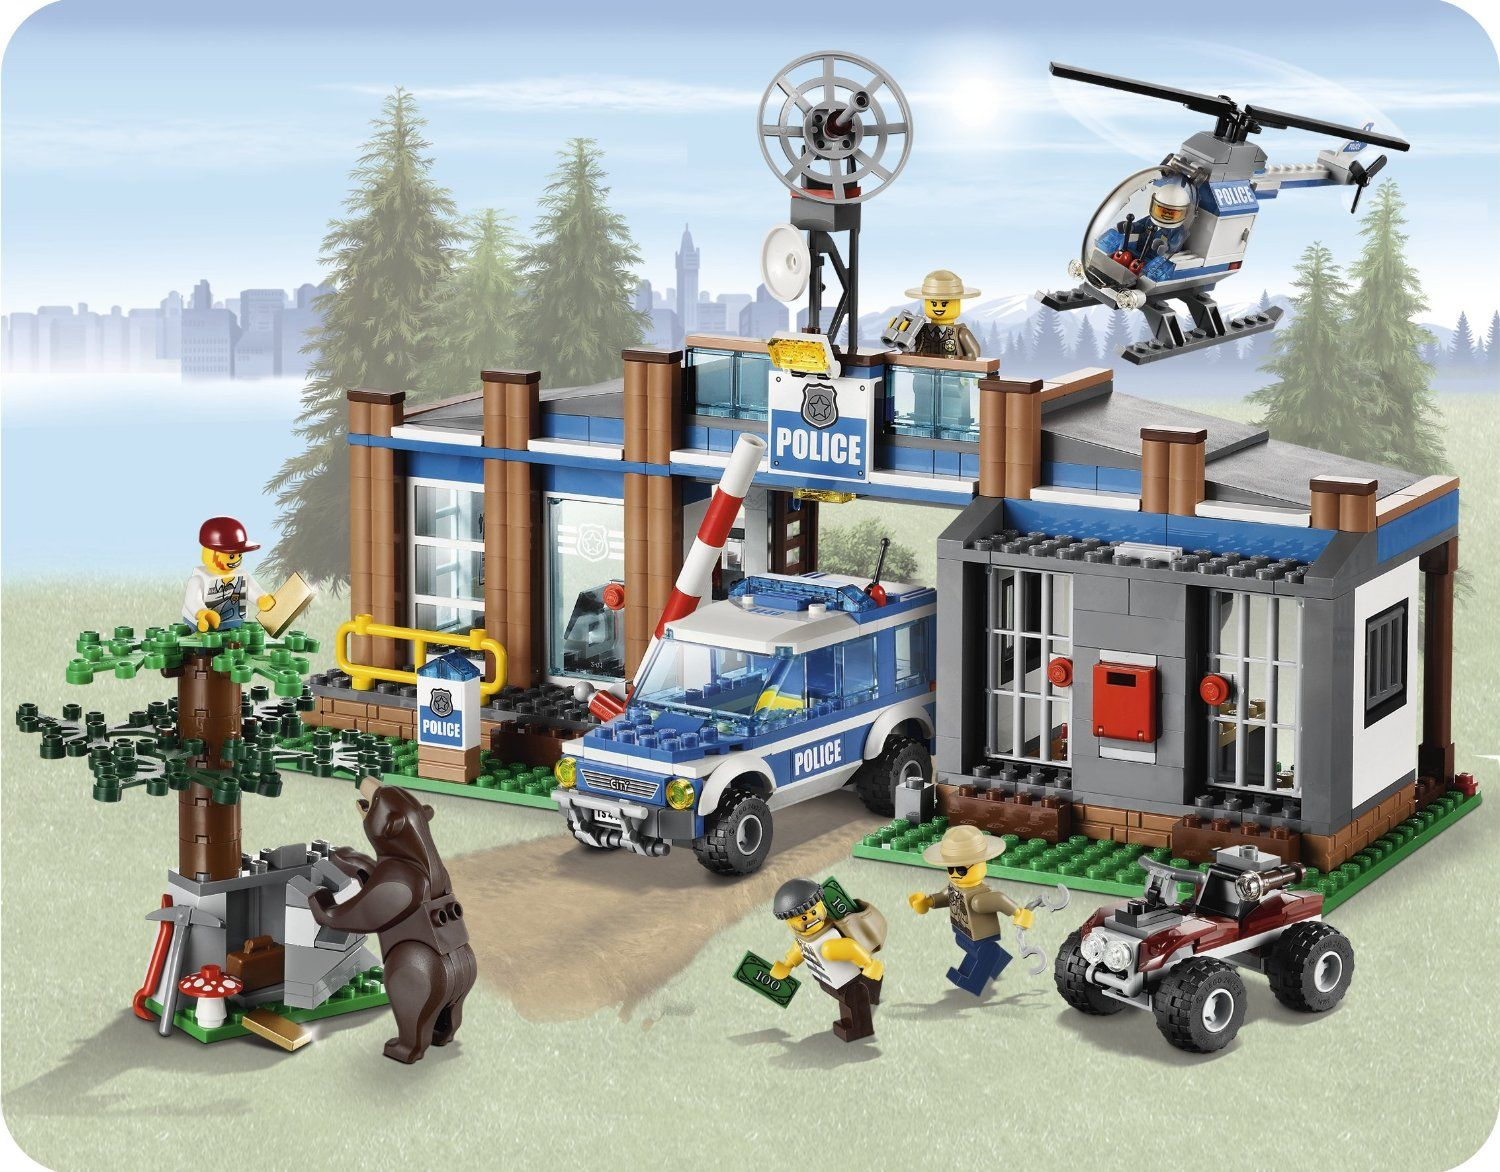 Lego City Forest Police Station W Helicopter 5 Minifigures